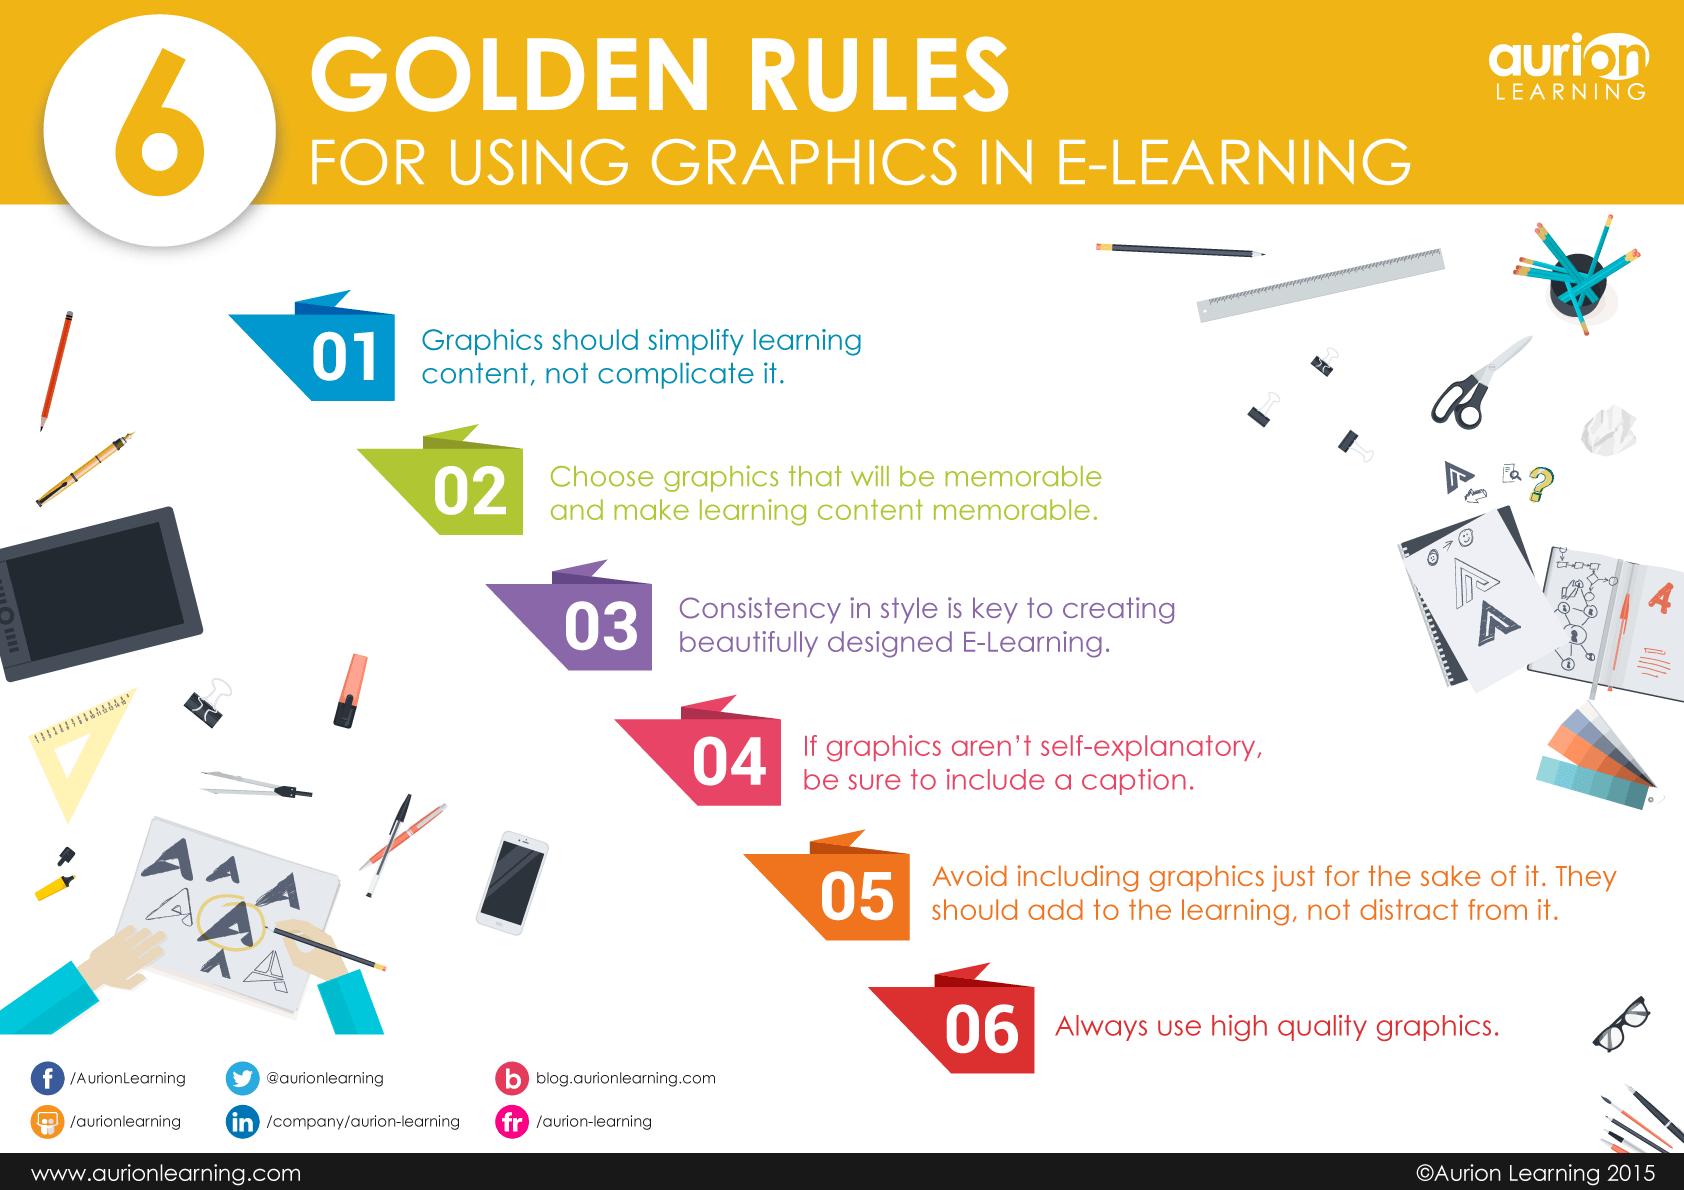 The Six Golden Rules for Using Graphics in E-Learning | Aurion Learning thumbnail